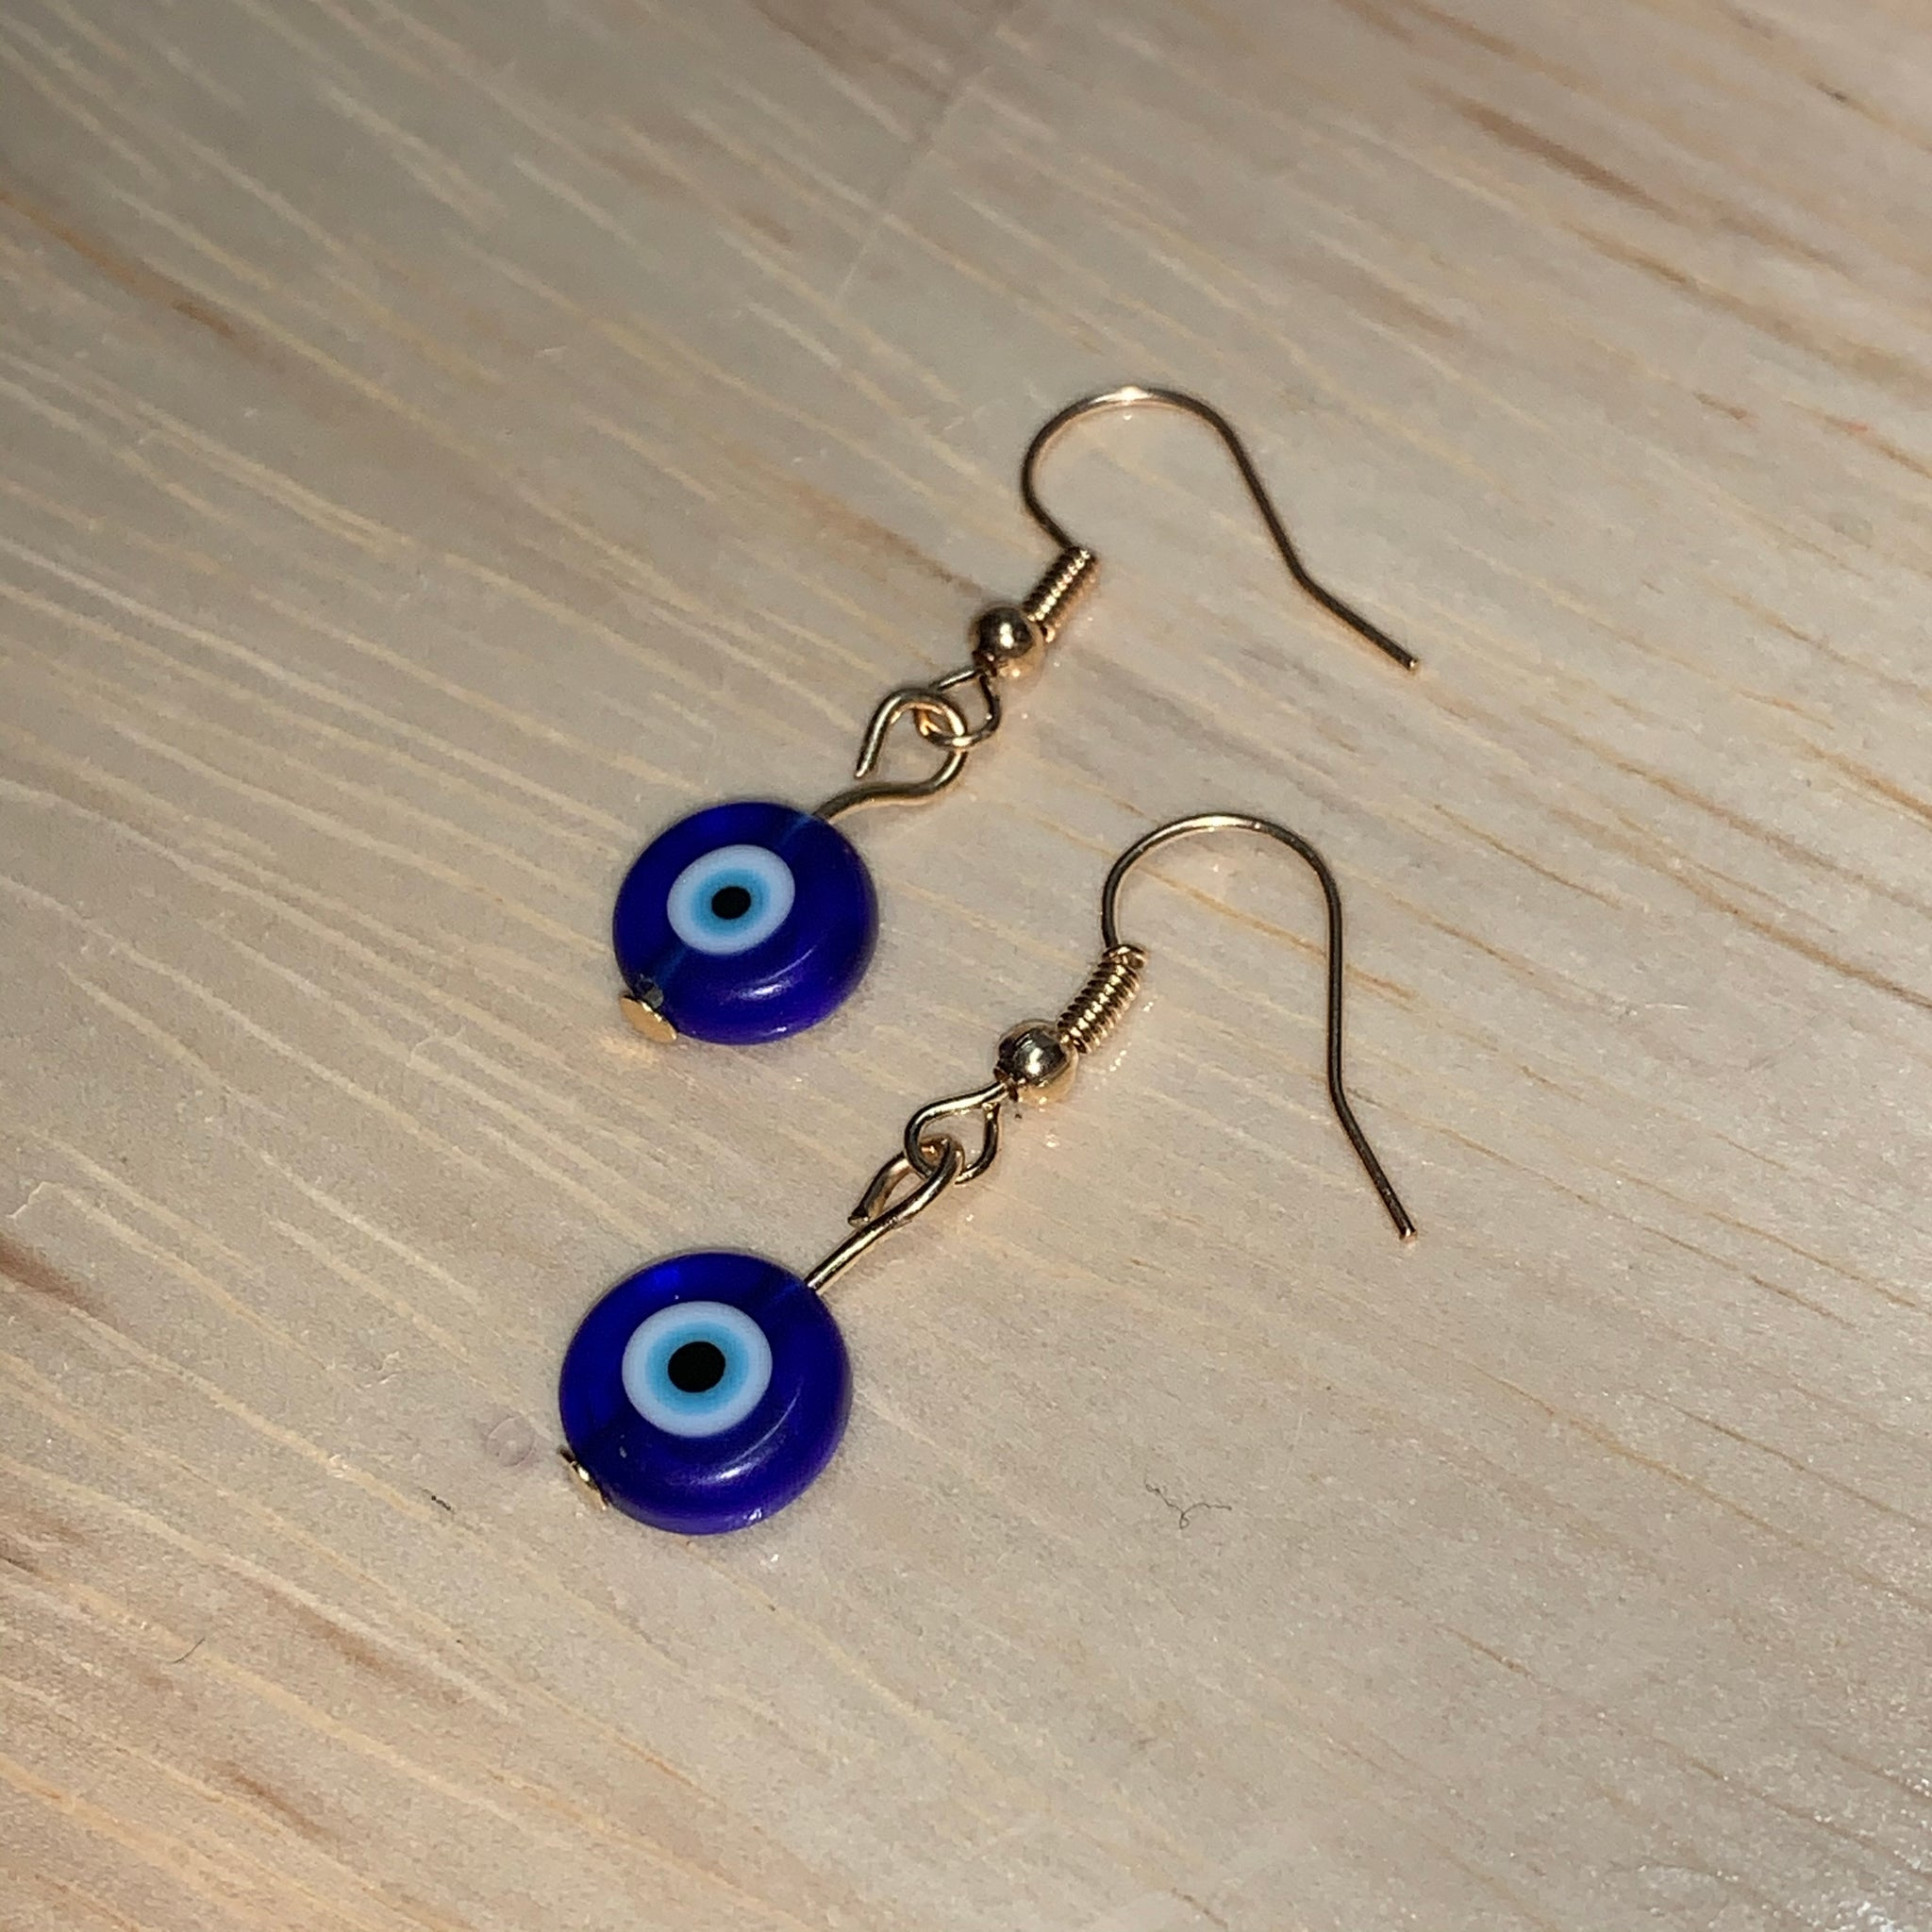 Glass Evil Eye Silver/Gold Earrings - Gaia Luna1